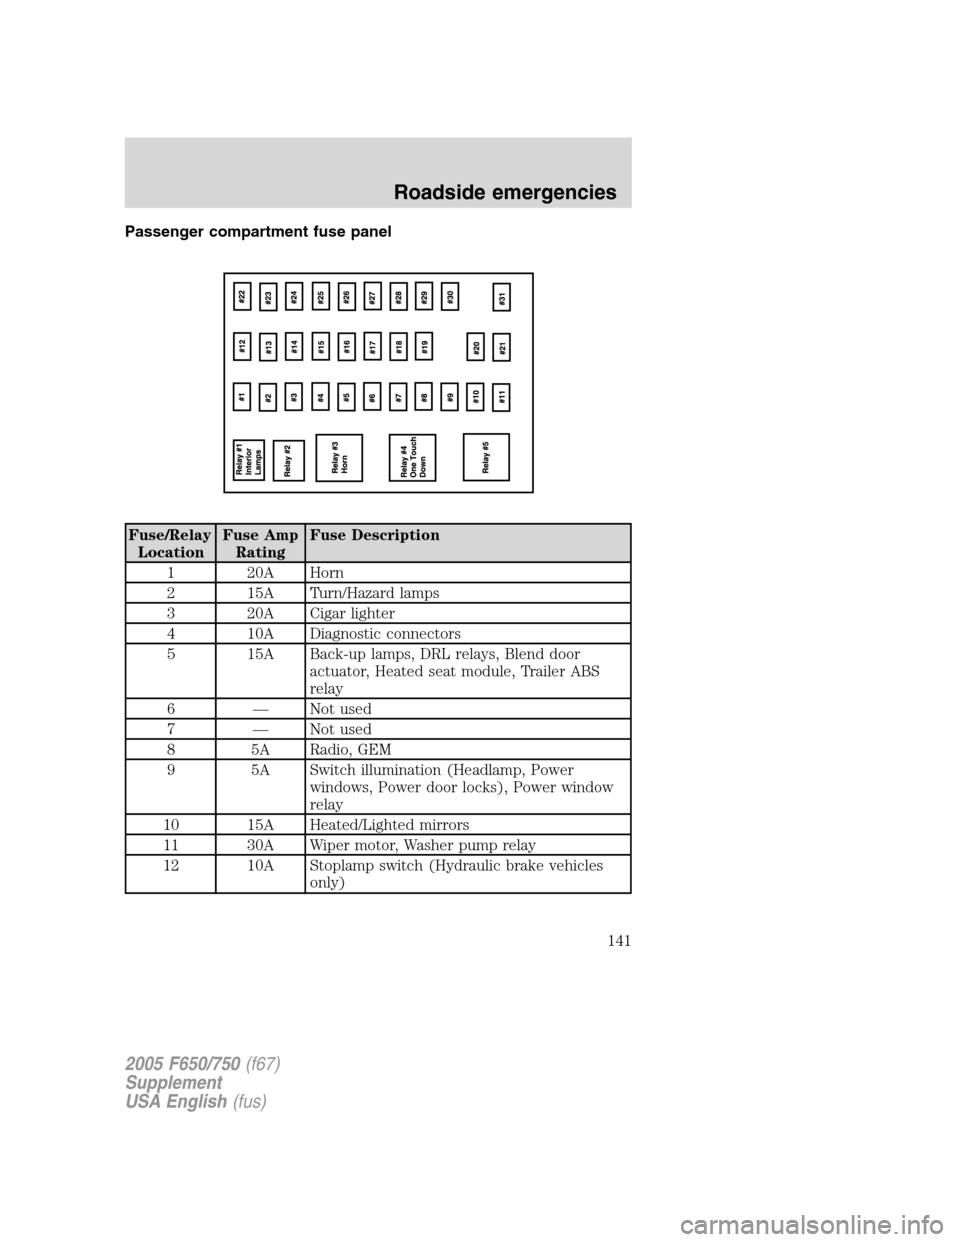 Abs Ford F650 2005 11g Owners Manual Fuse Diagram Page 141 Passenger Compartment Panel